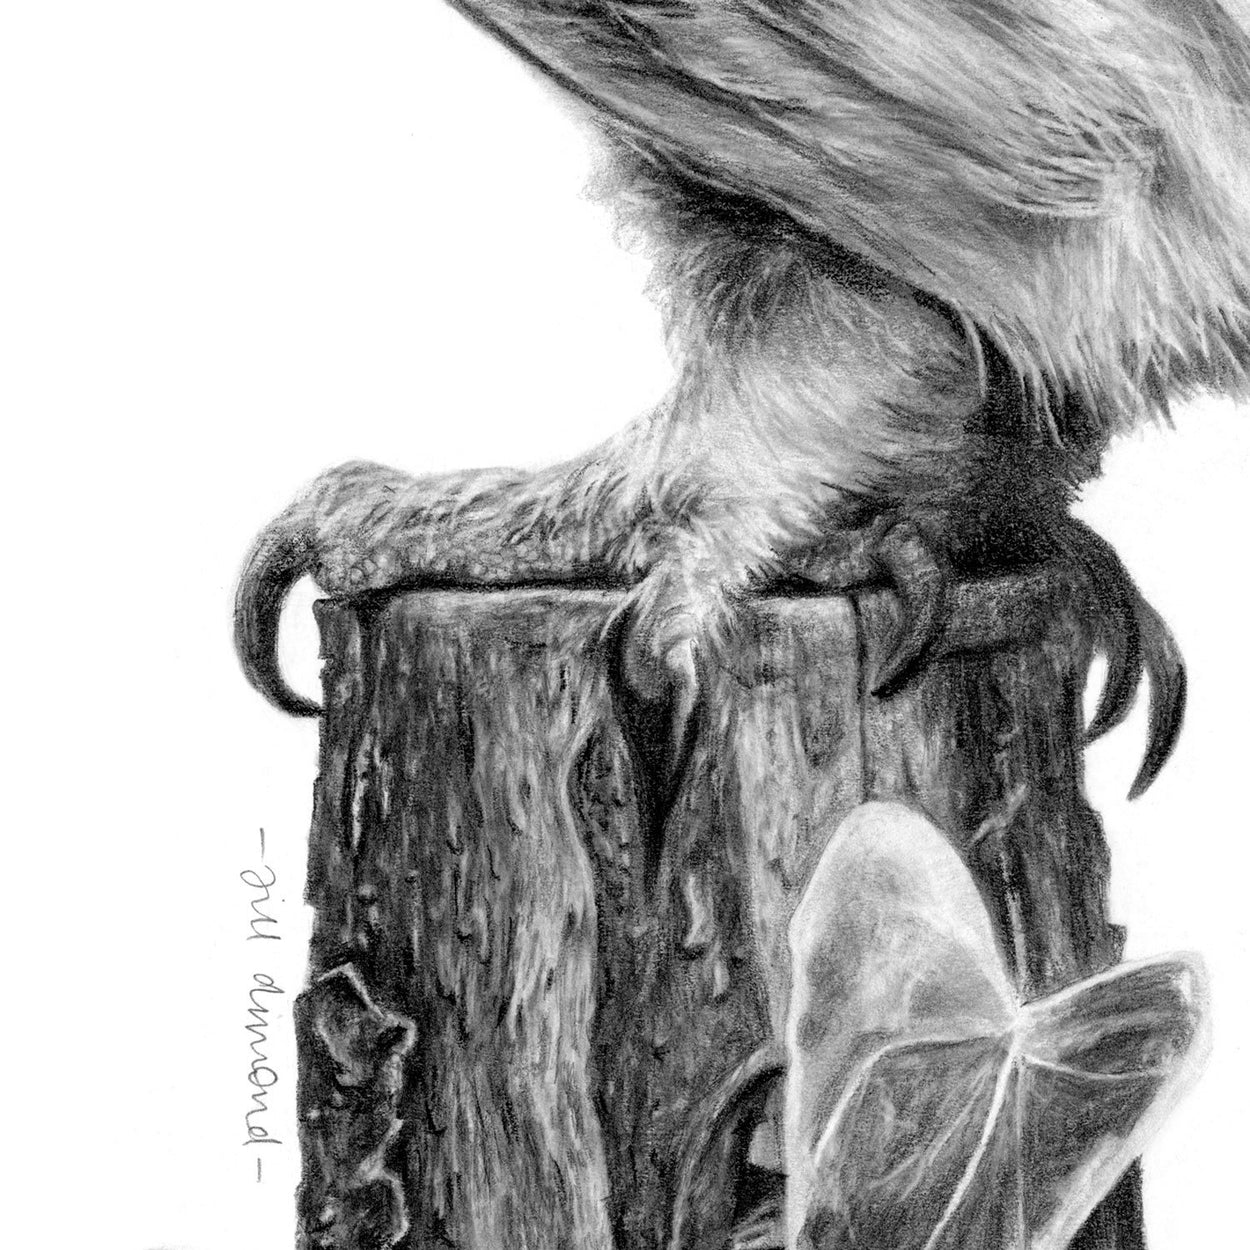 Little Owl Drawing Foot Close-up - The Thriving Wild